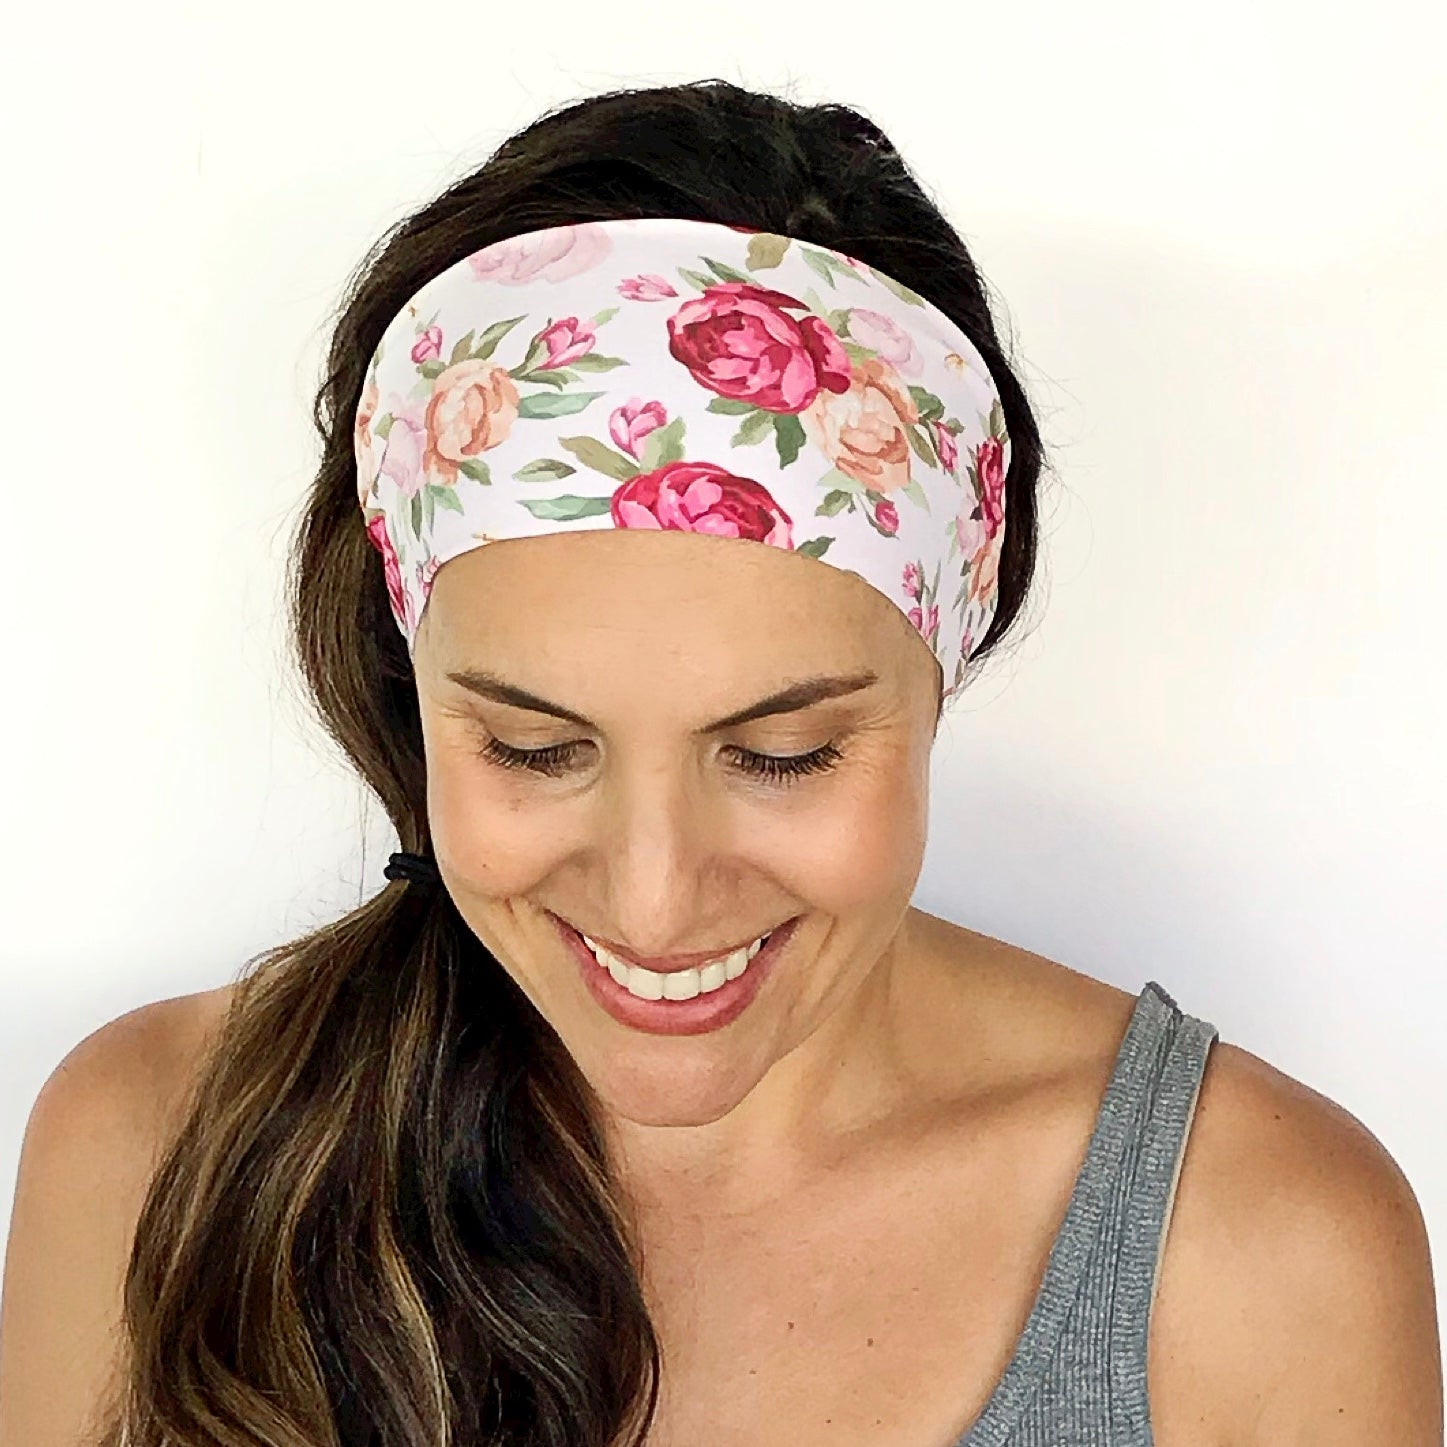 Nicola Workout Headband